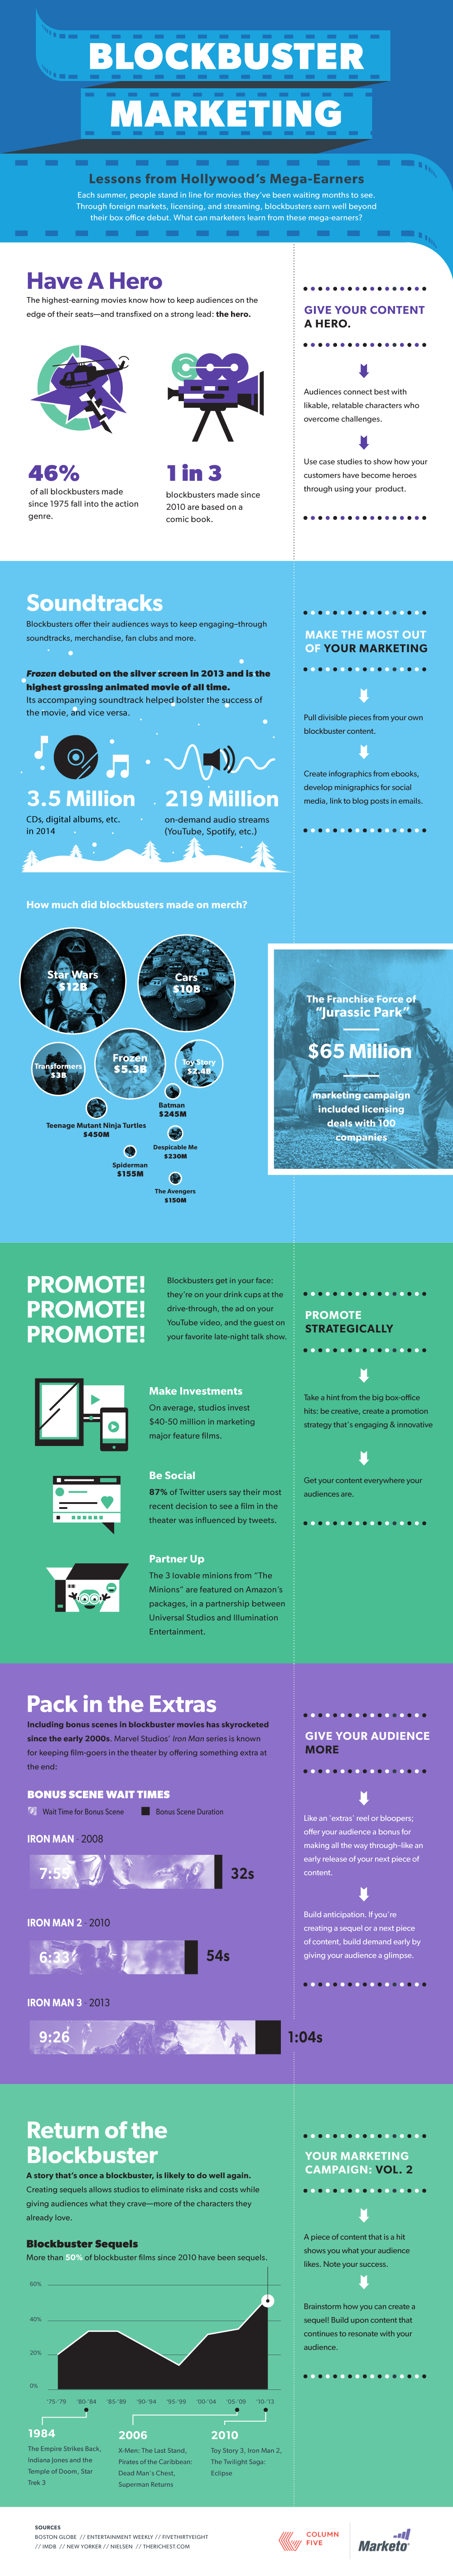 Marketing Lessons from Blockbusters #infographic //loredana.prwave.ro/2015/07/29/lectii-de-marketing-din-blockbuster-ele-de-la-hollywood/